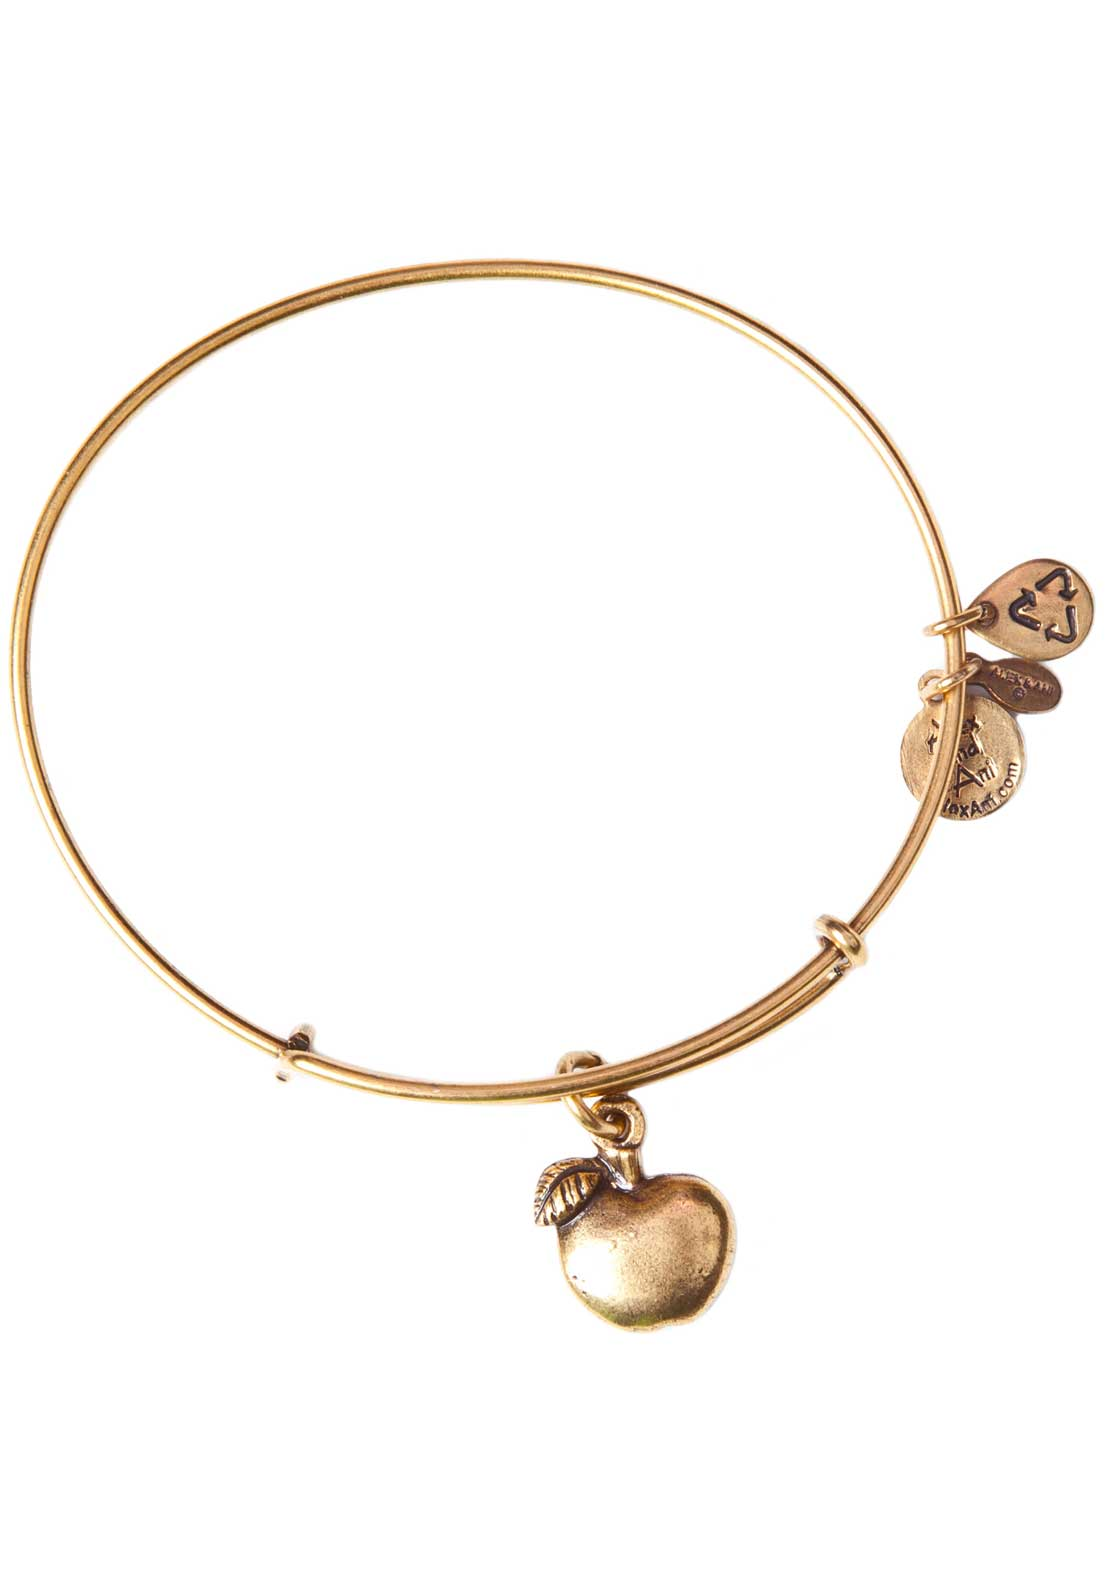 Alex and Ani (+) Energy Apple of Abundance Bracelet, Gold